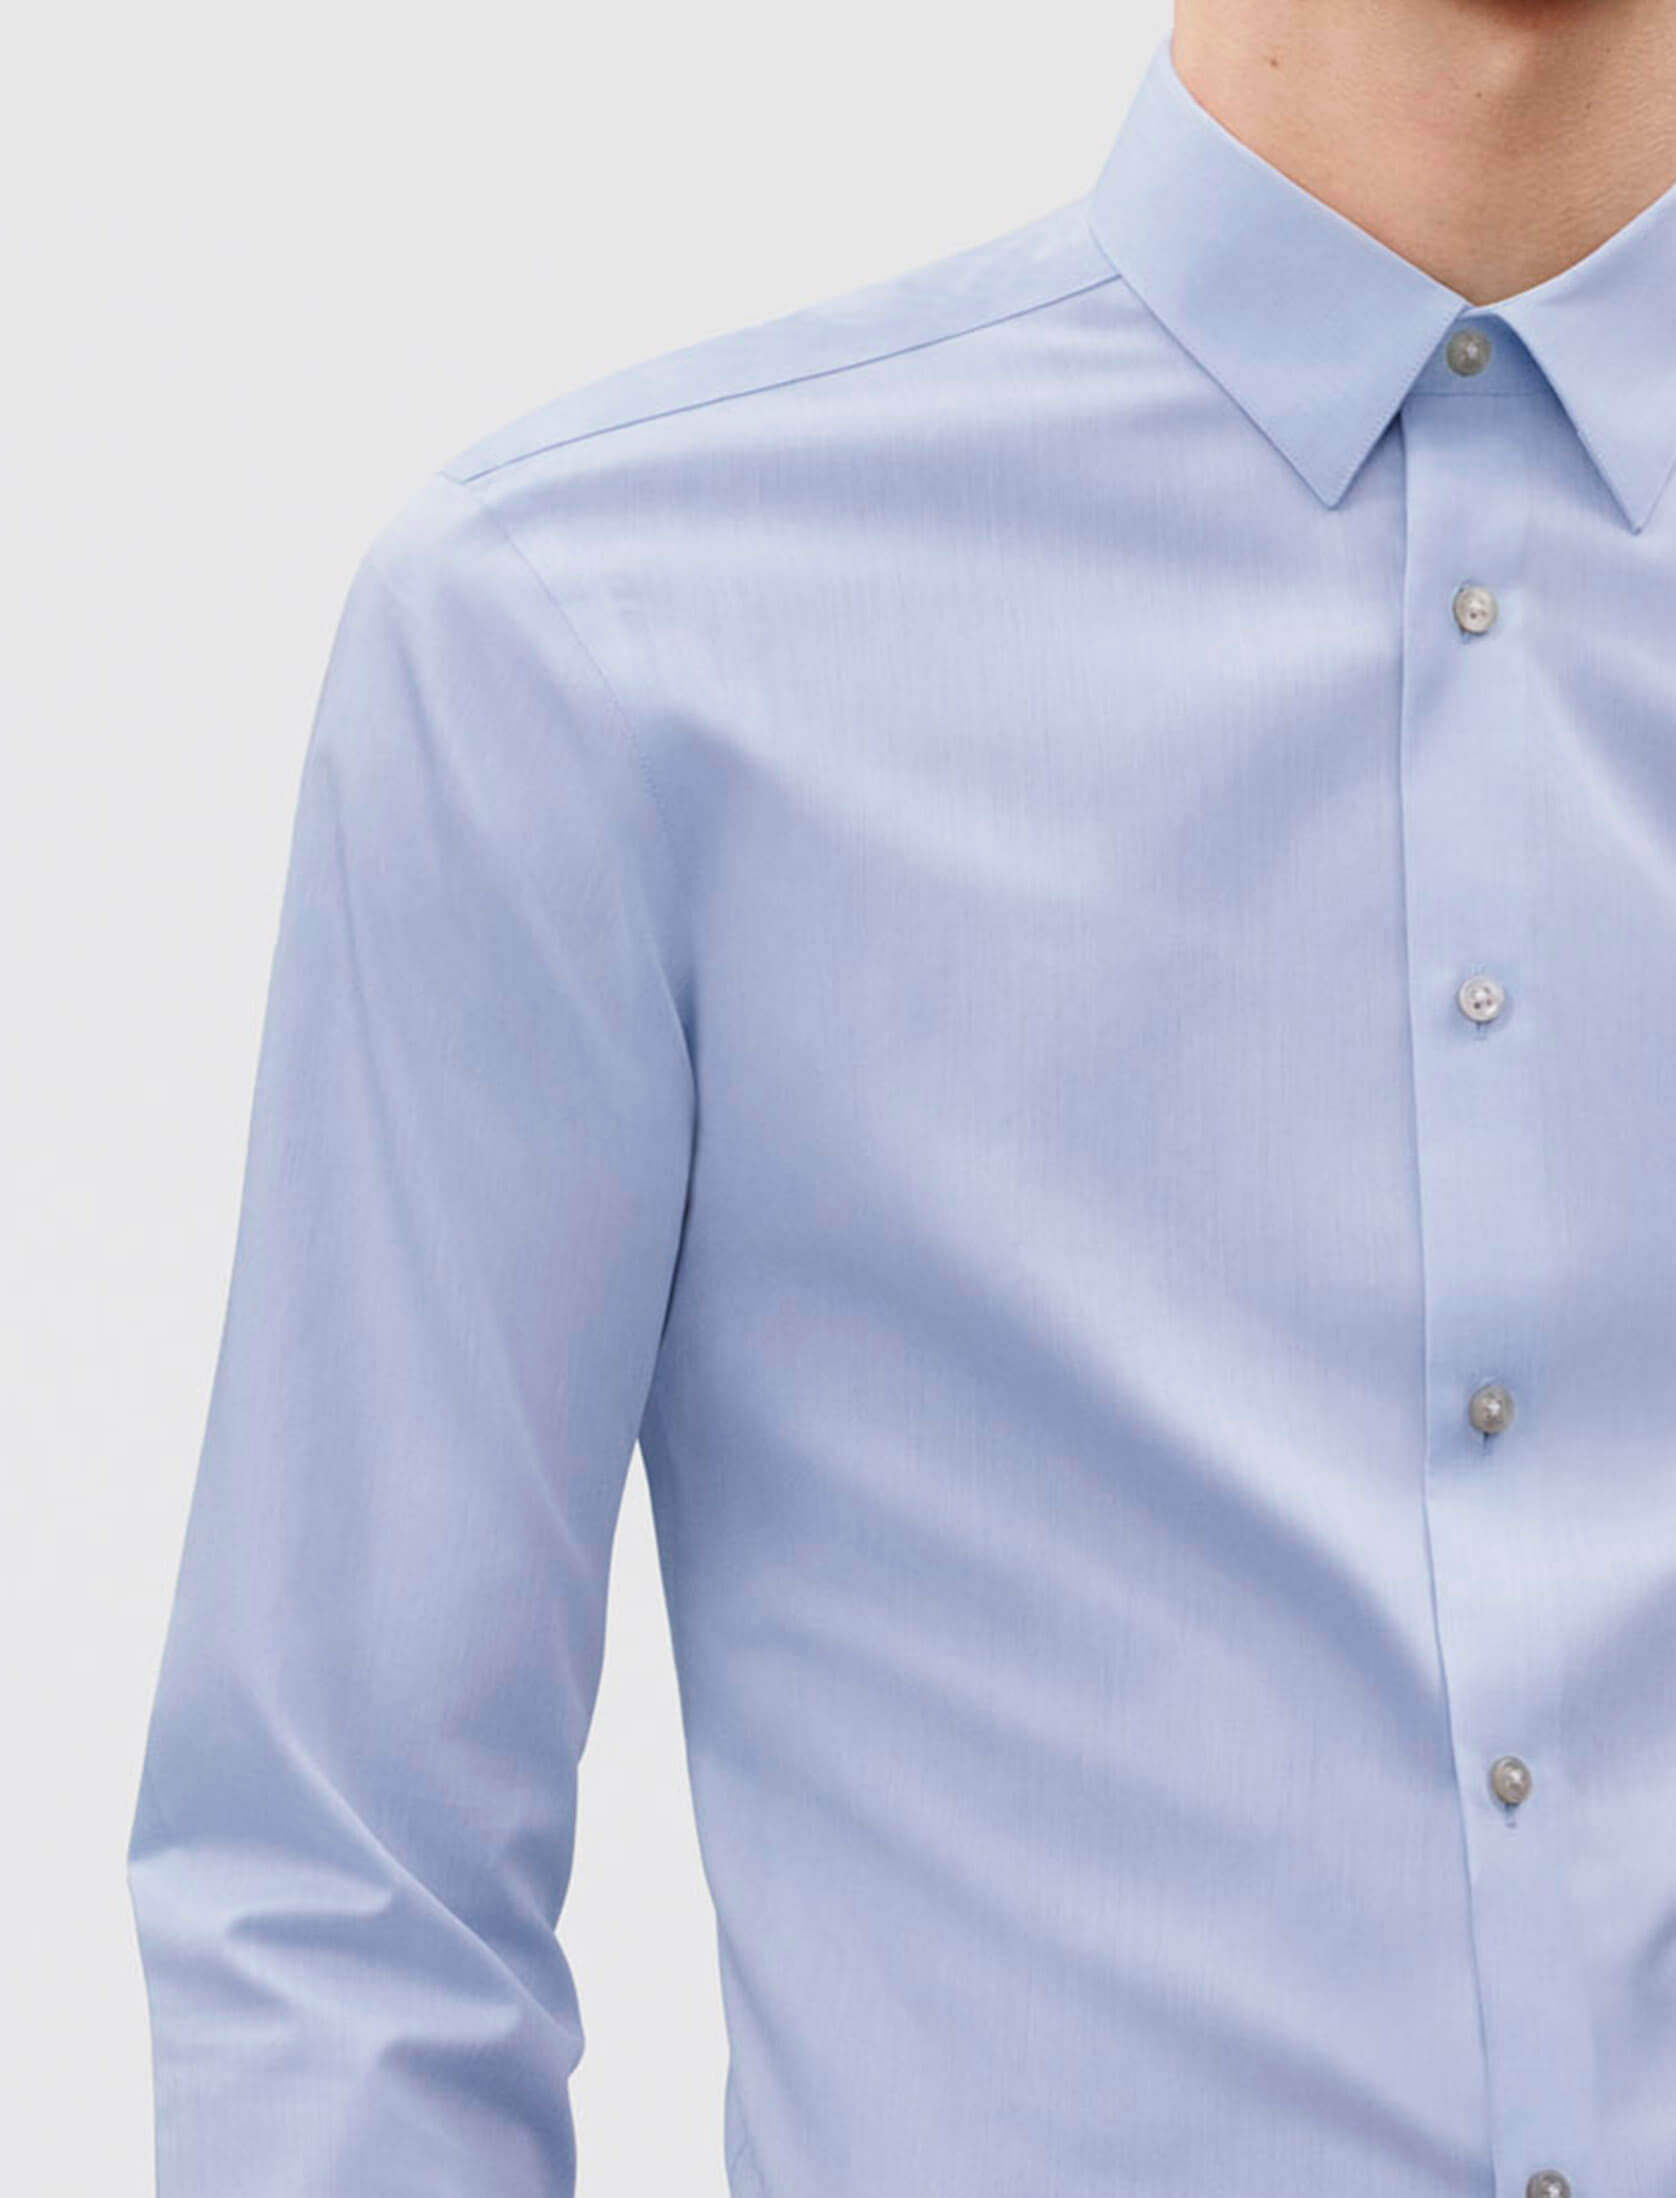 77d3cd73fc Men's Dress Shirts | Fitted and Casual Dress Shirts